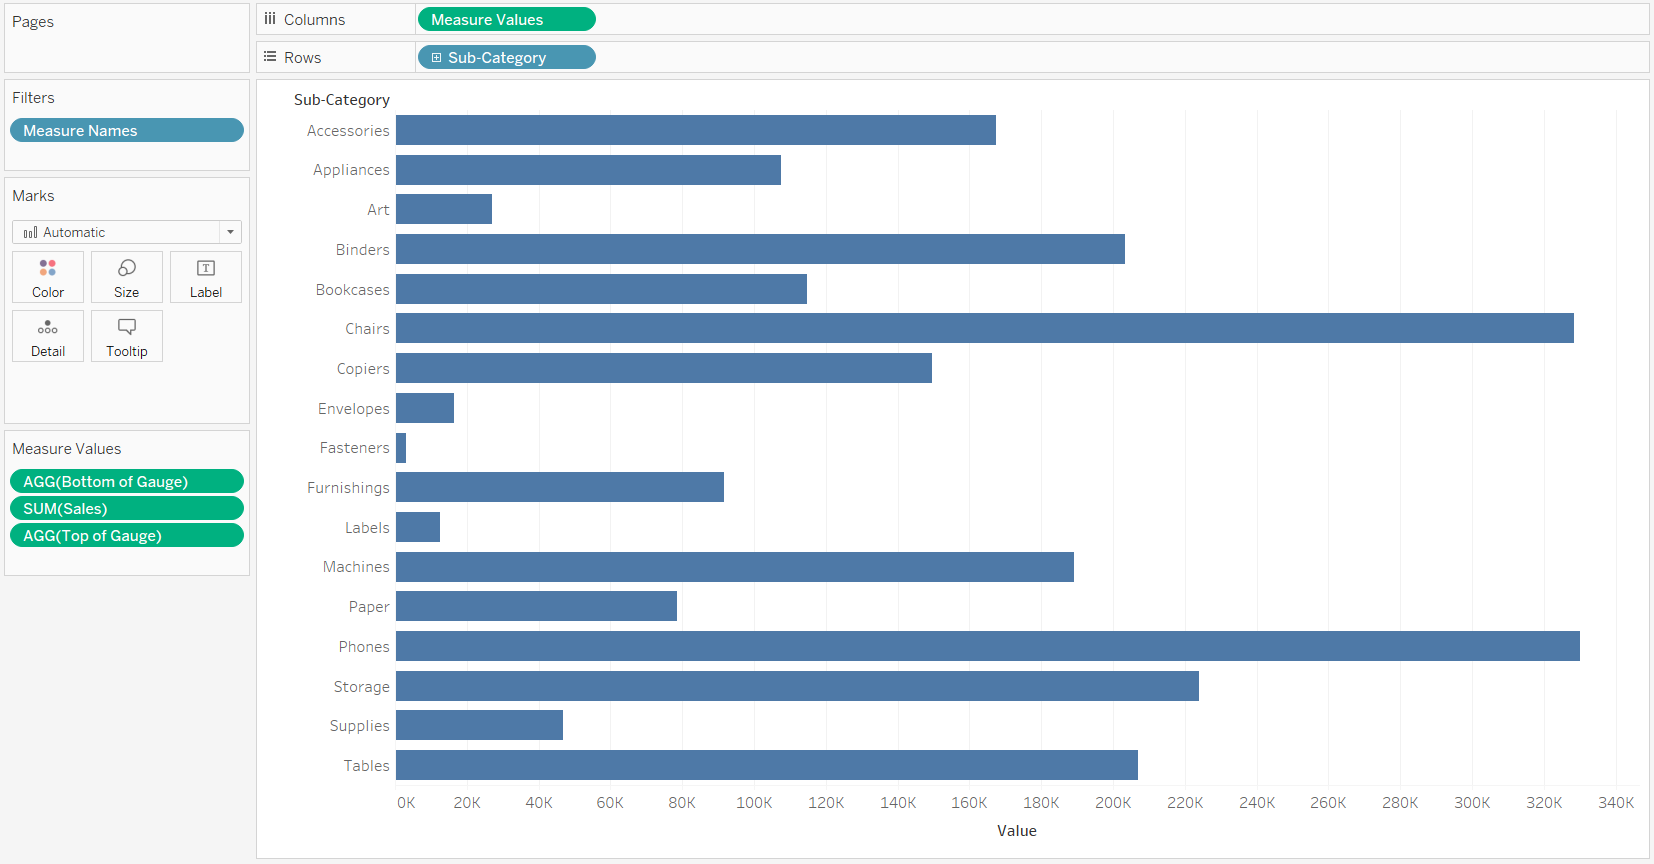 Filtered Measure Values by Sub-Category Bar Chart in Tableau